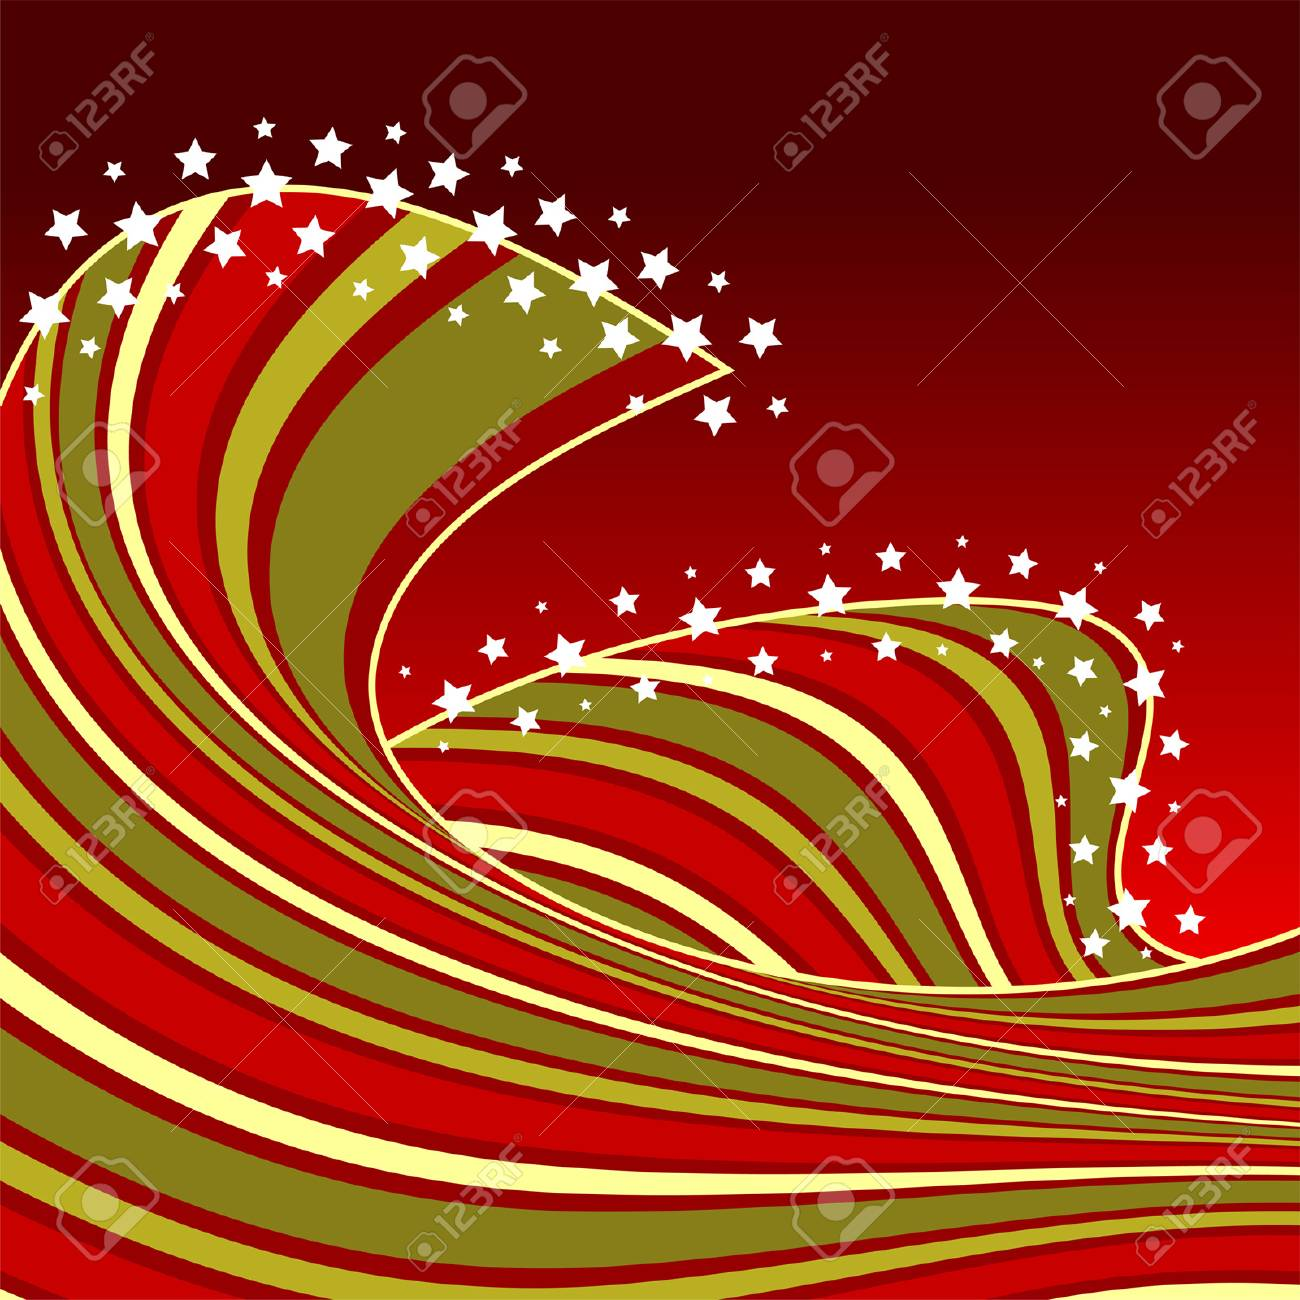 Abstract Christmas wave background with white stars Stock Vector - 7585046